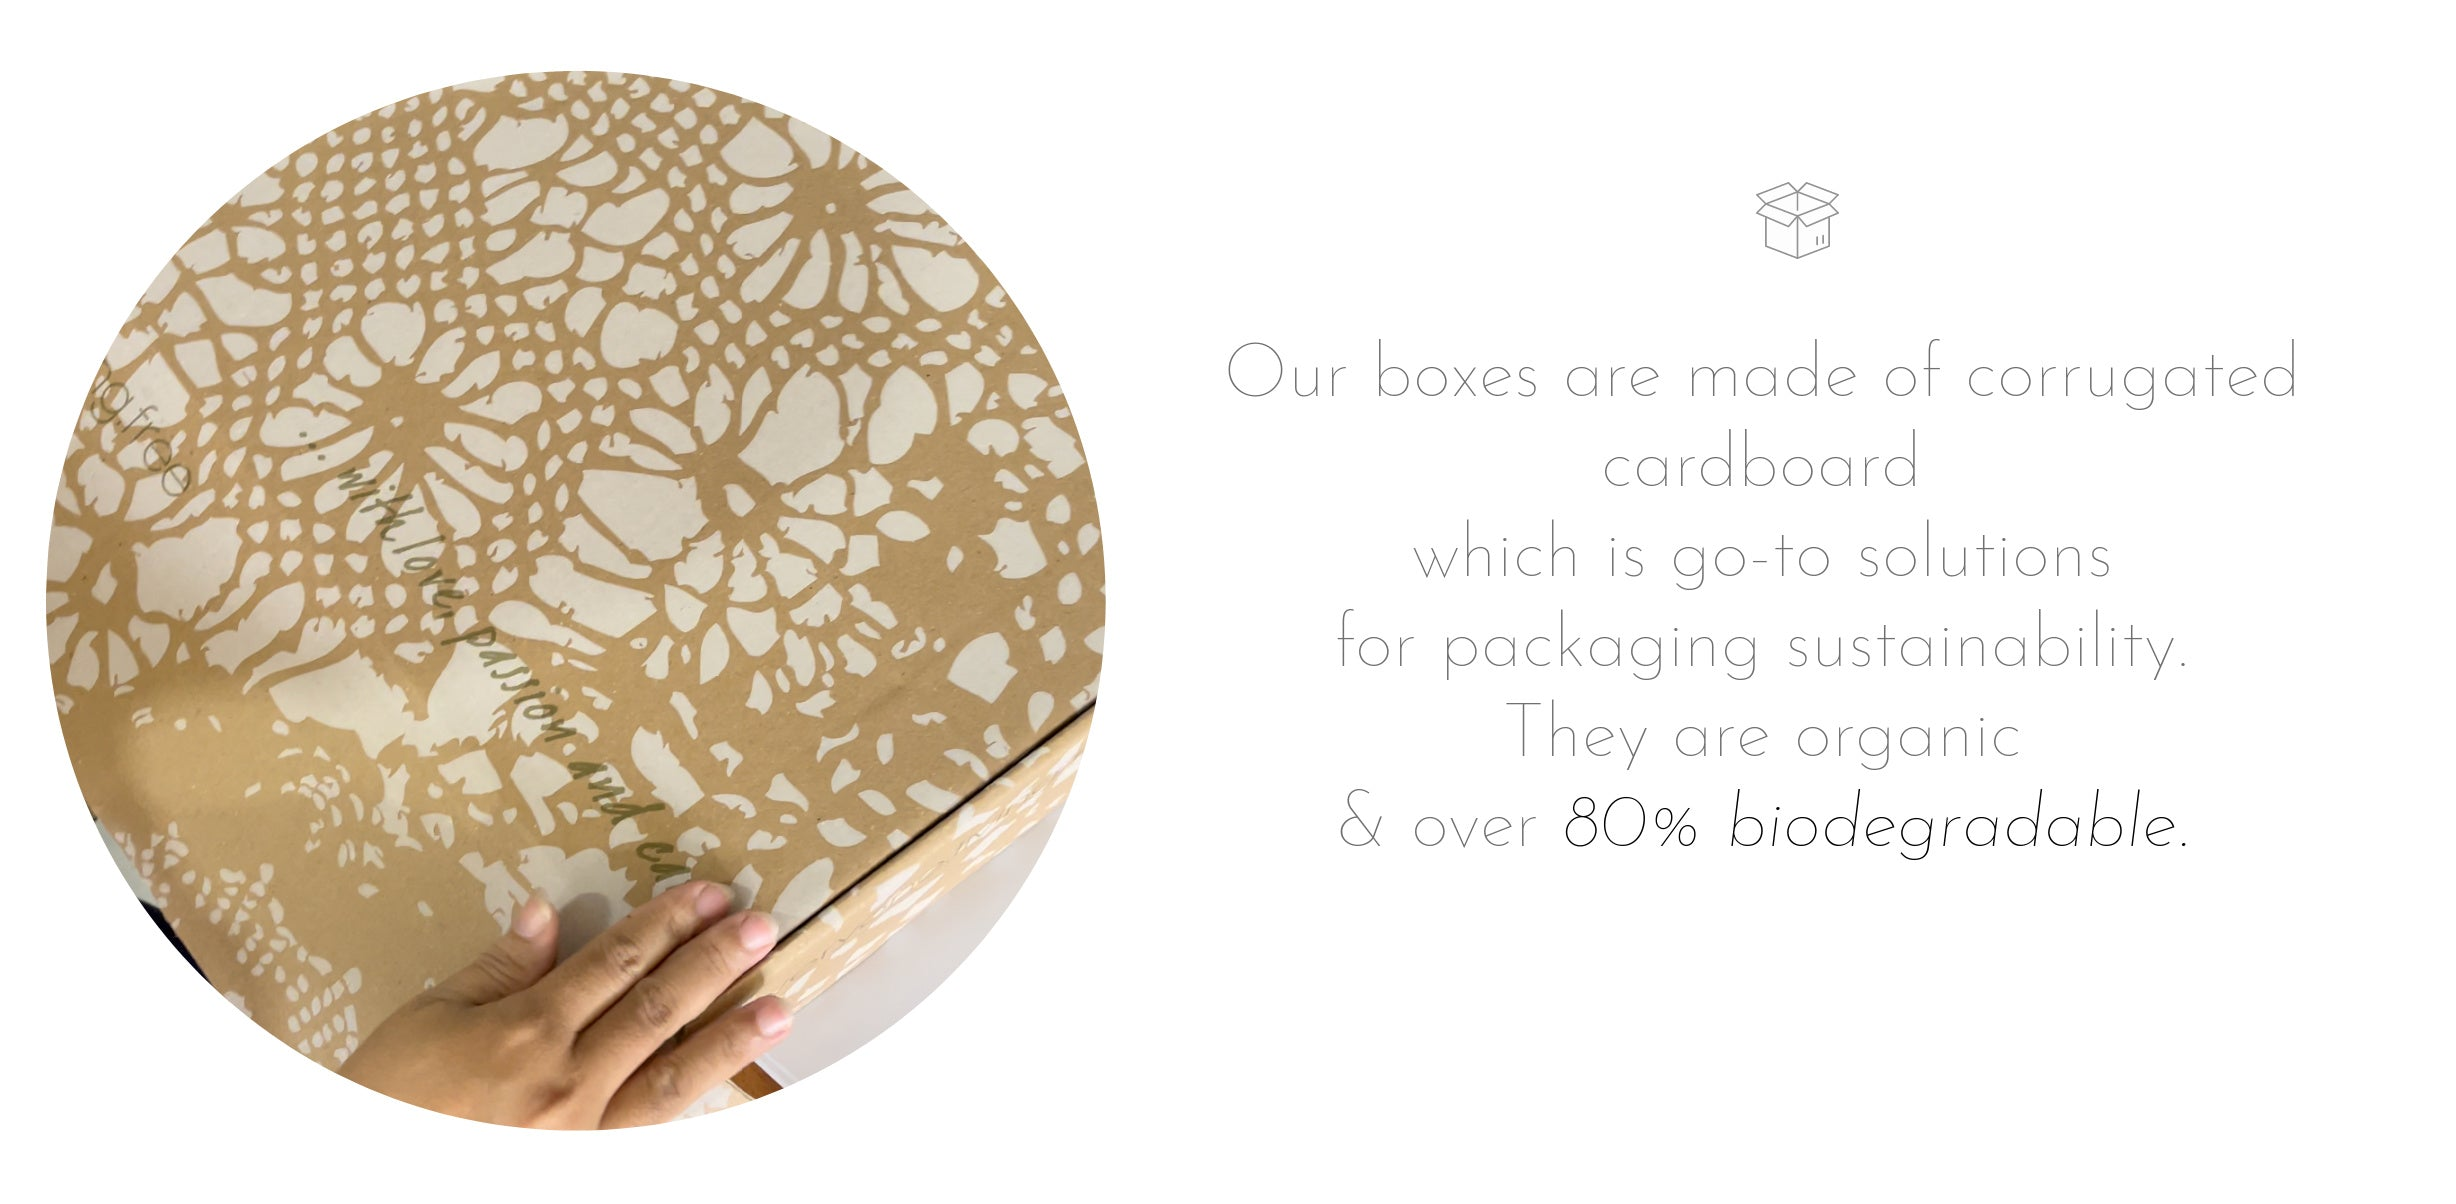 Our boxes are crafted from corrugated cardboard which is go-to solutions for packaging sustainability. They are organic and over  80% biodegradable.